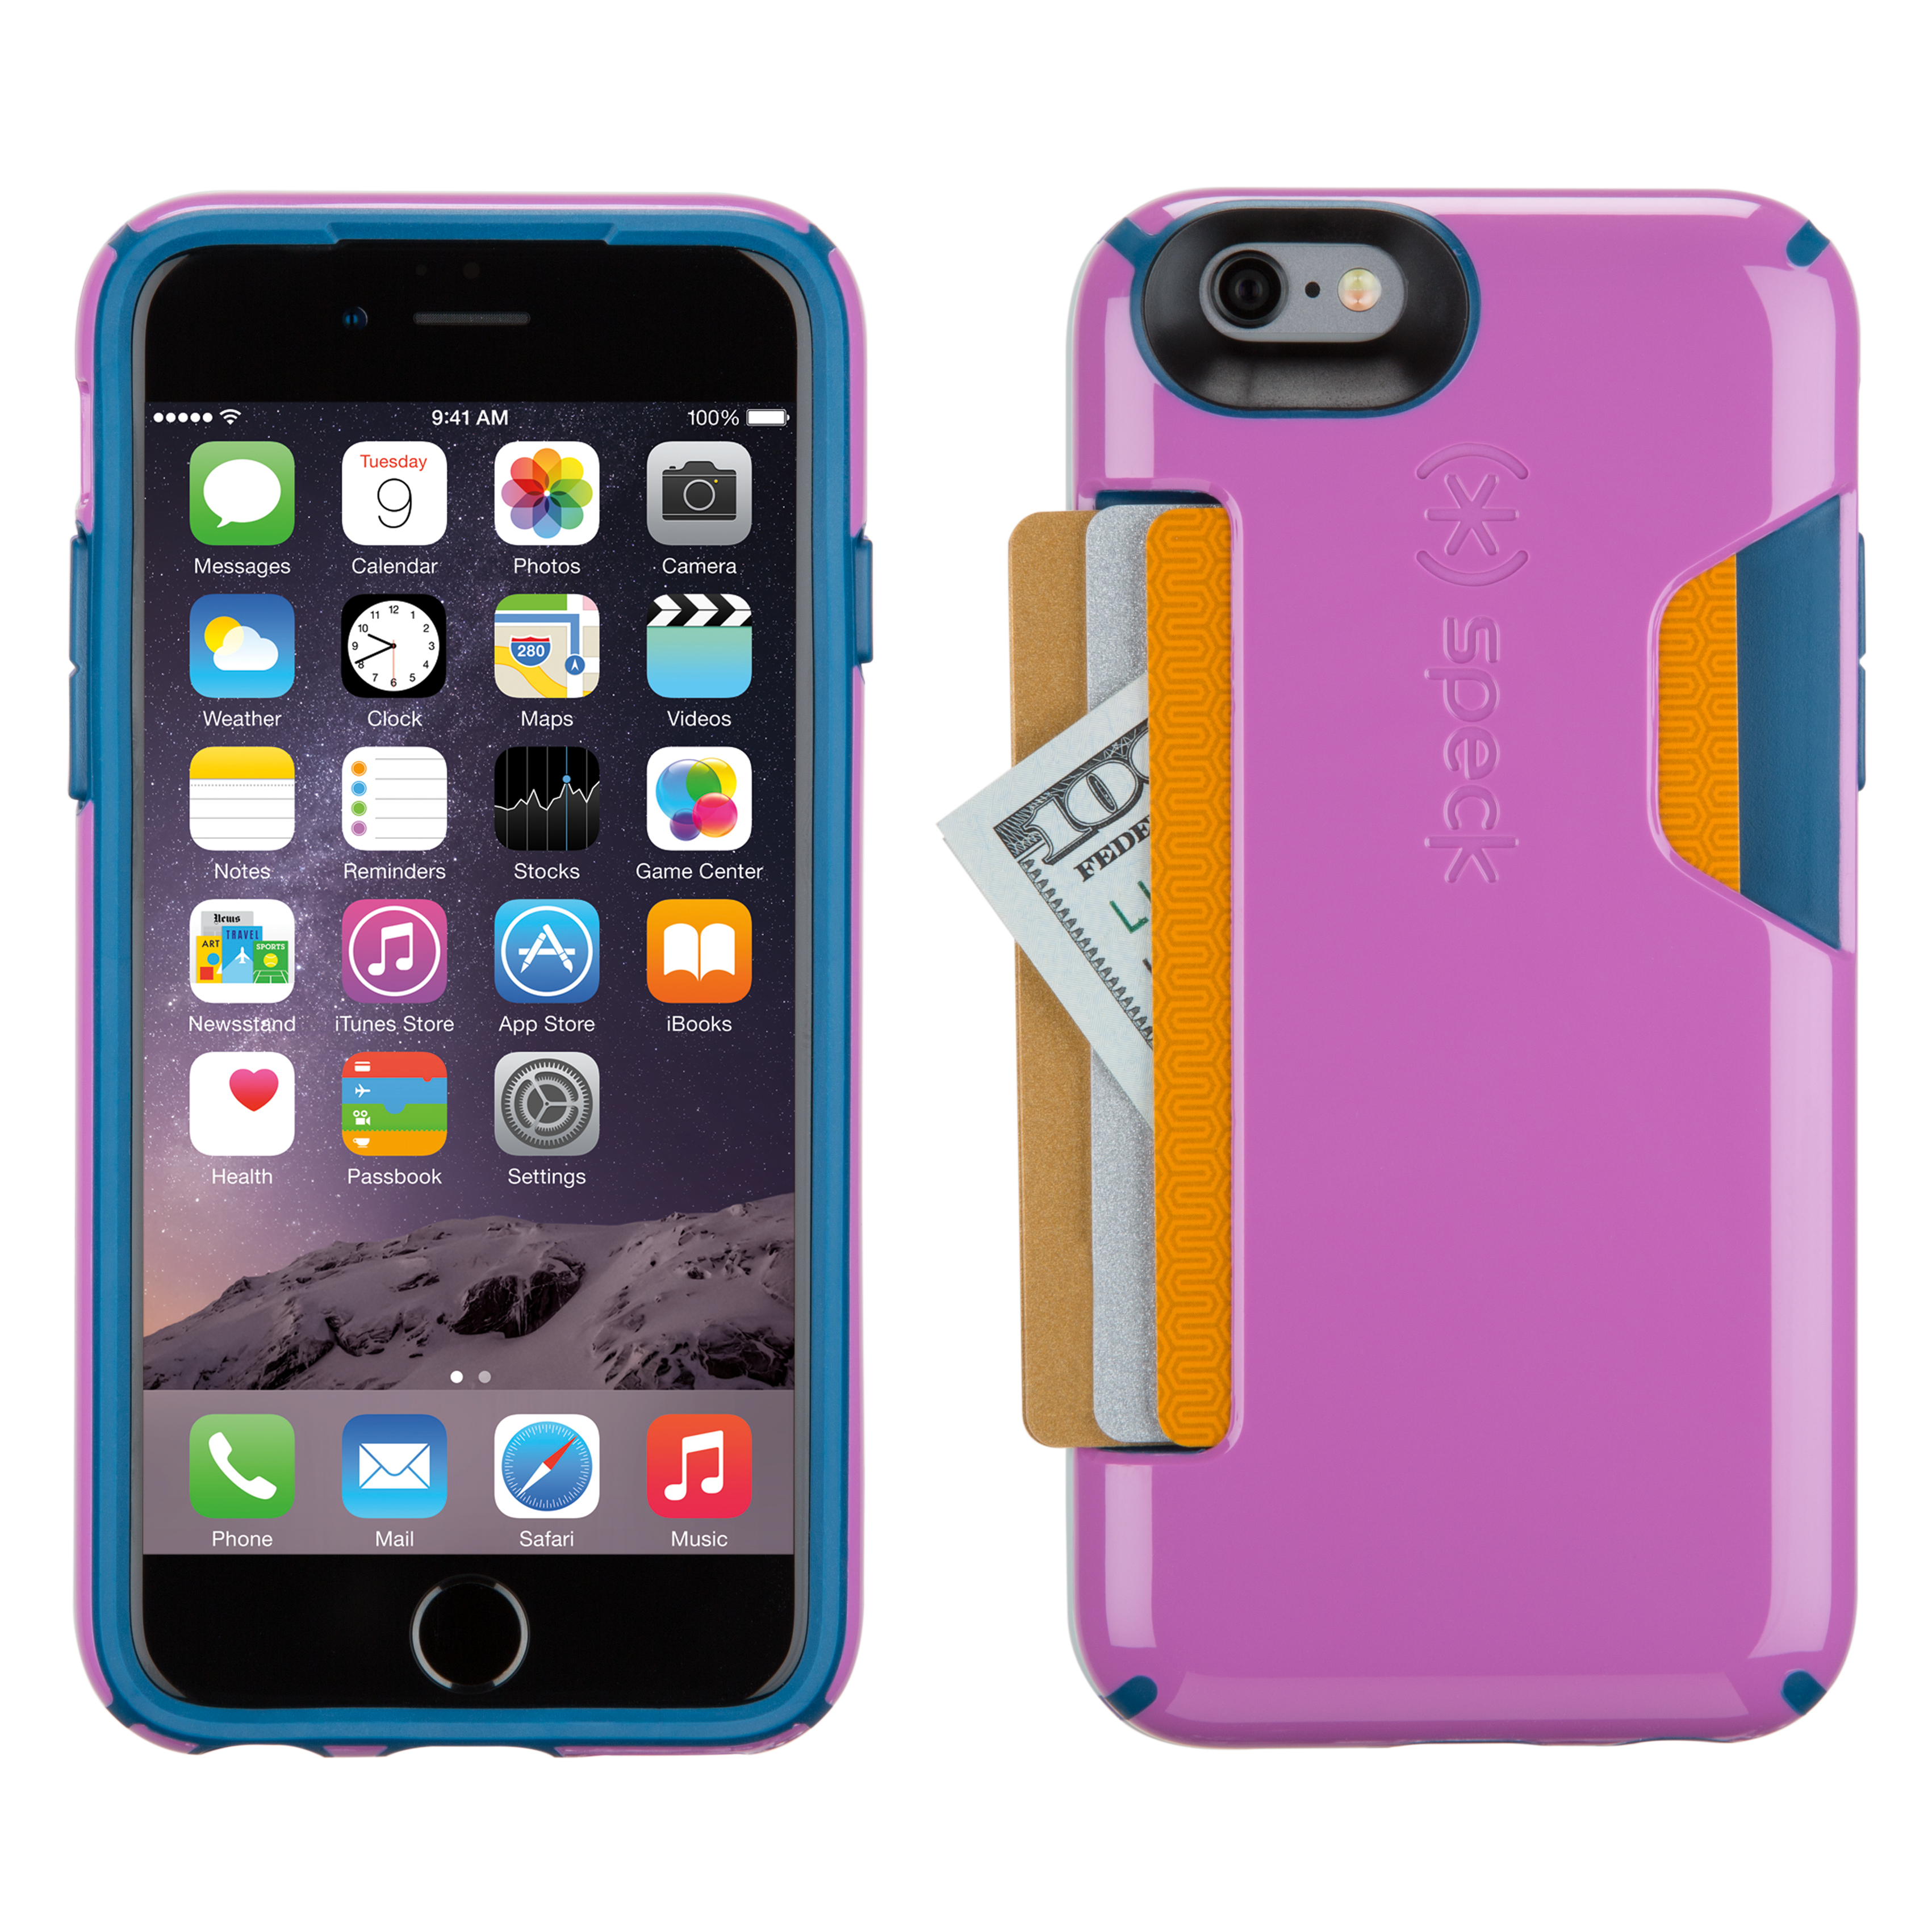 Compare prices for Speck CandyShell Card iPhone 6s and iPhone 6 Cases Beaming Orchid Purple/Deep Sea Blue